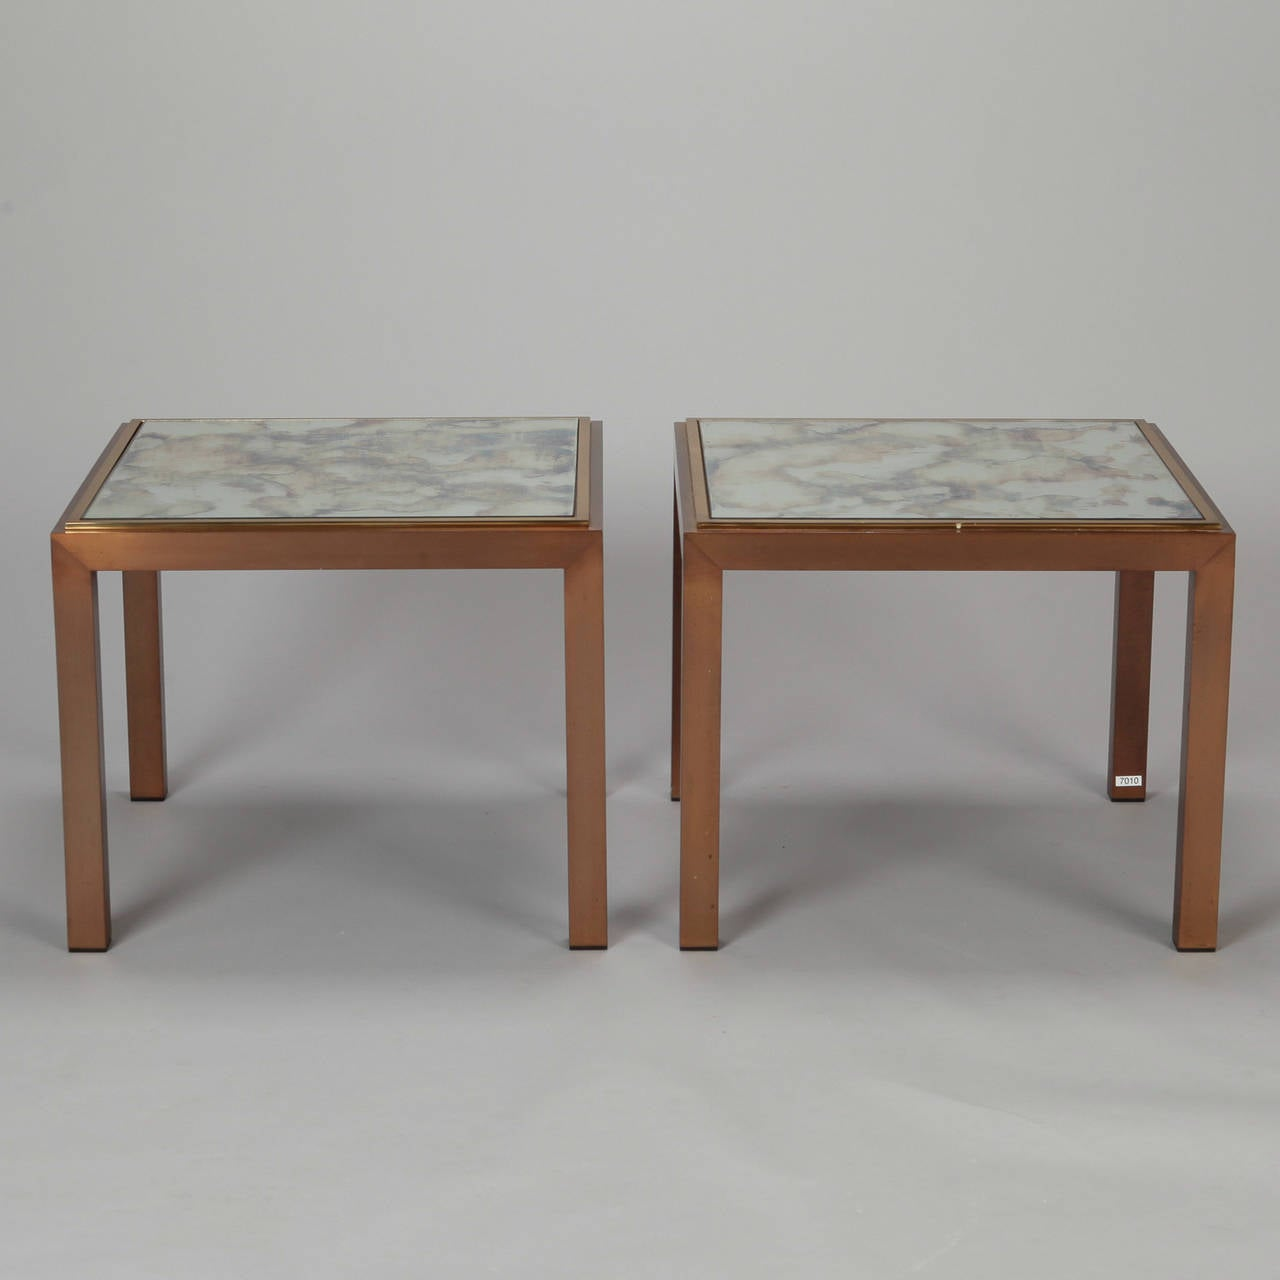 Pair of Square Bronze Metal End Tables with Marbelized Mirror Tops 2